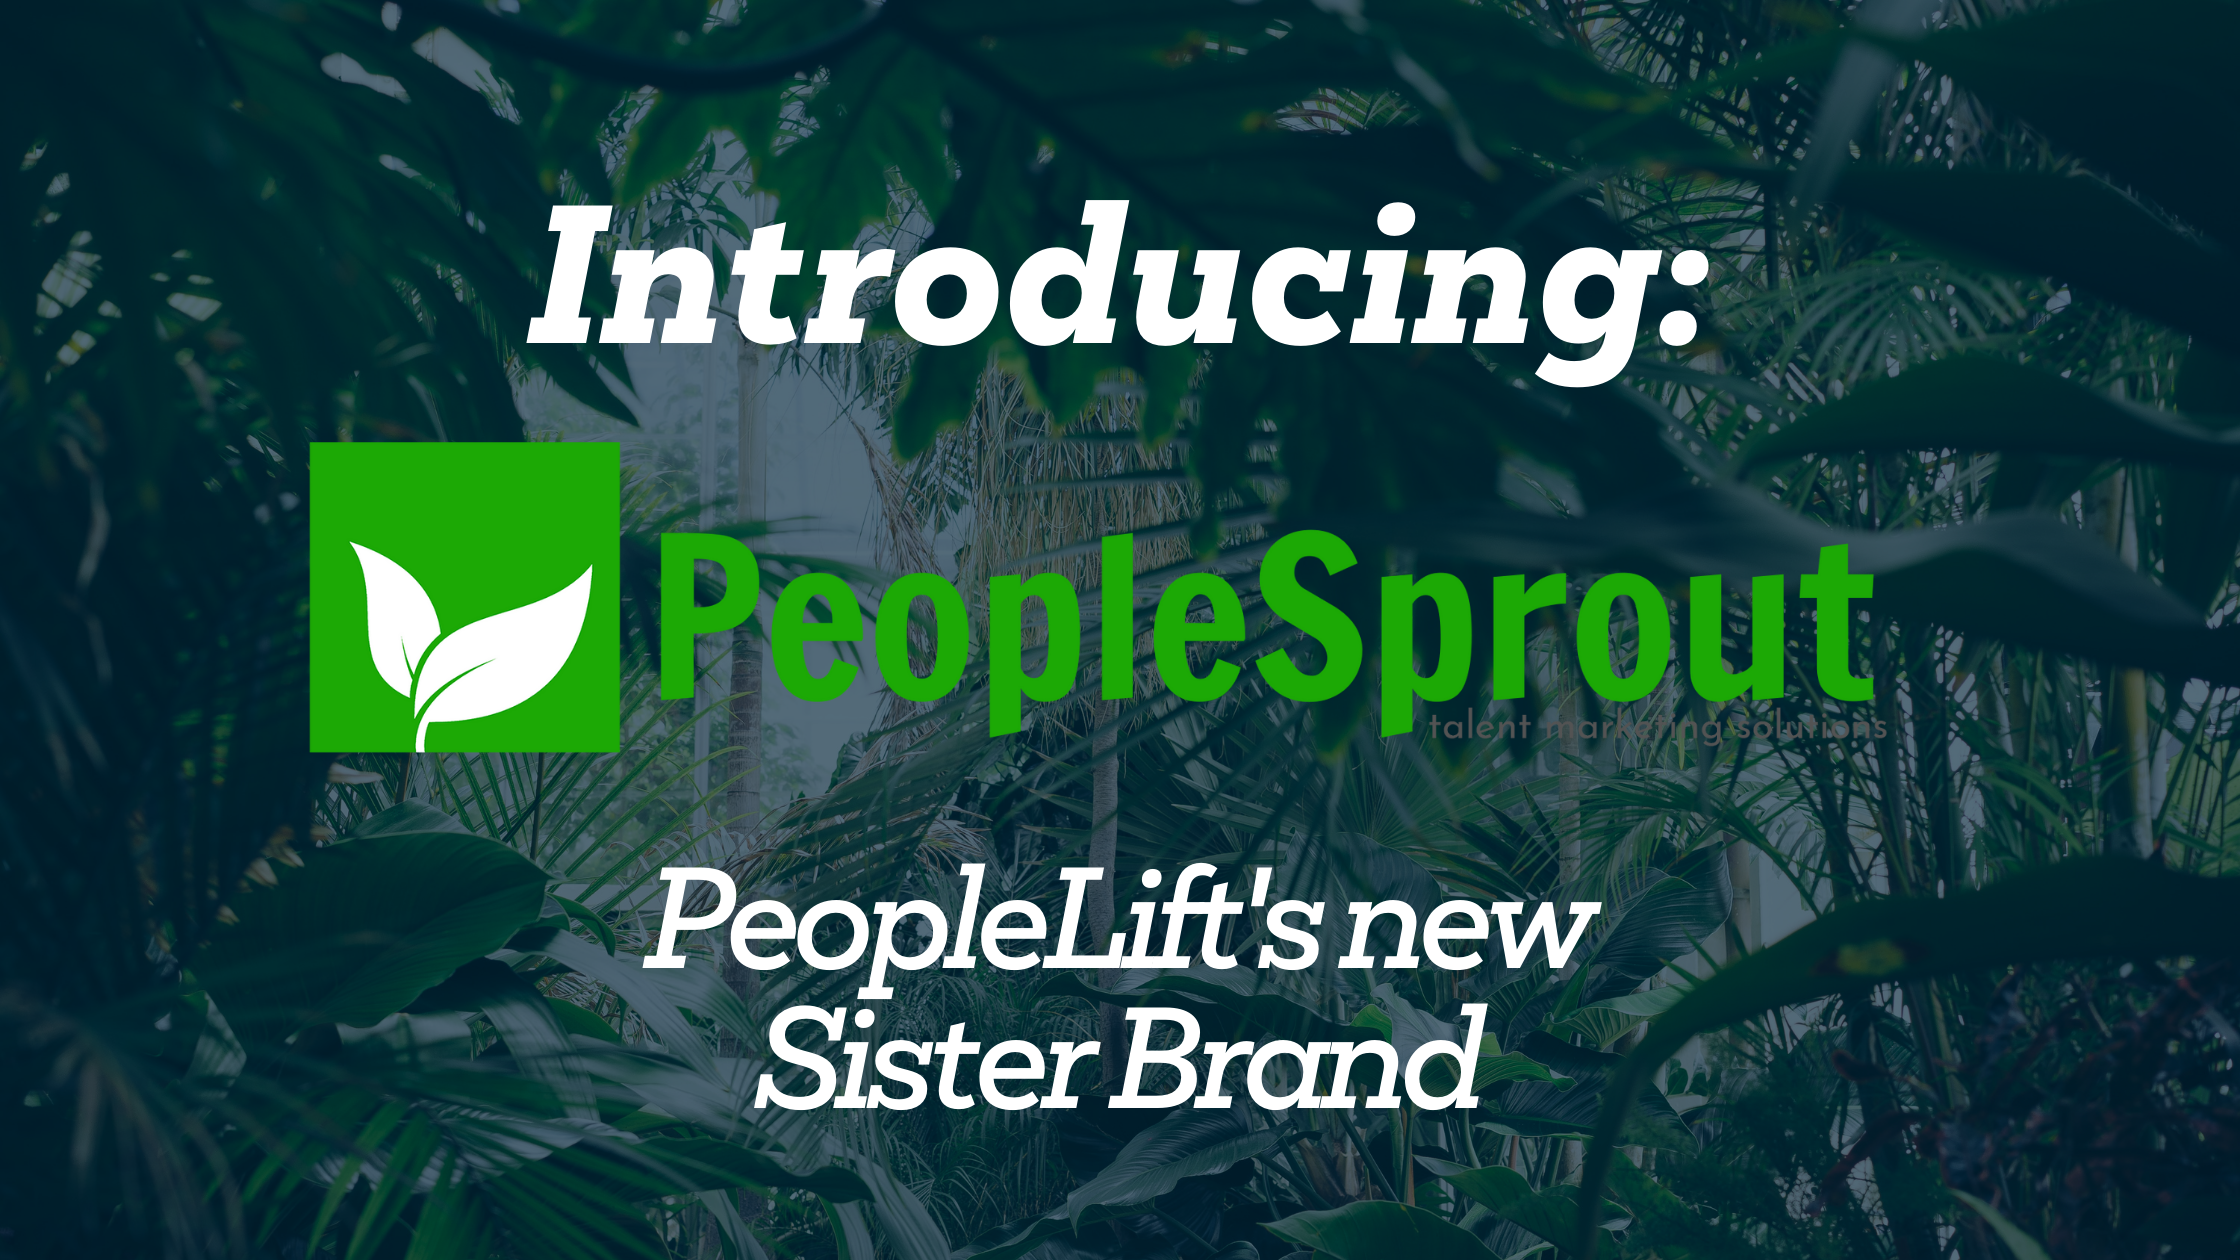 Introducing PeopleSprout